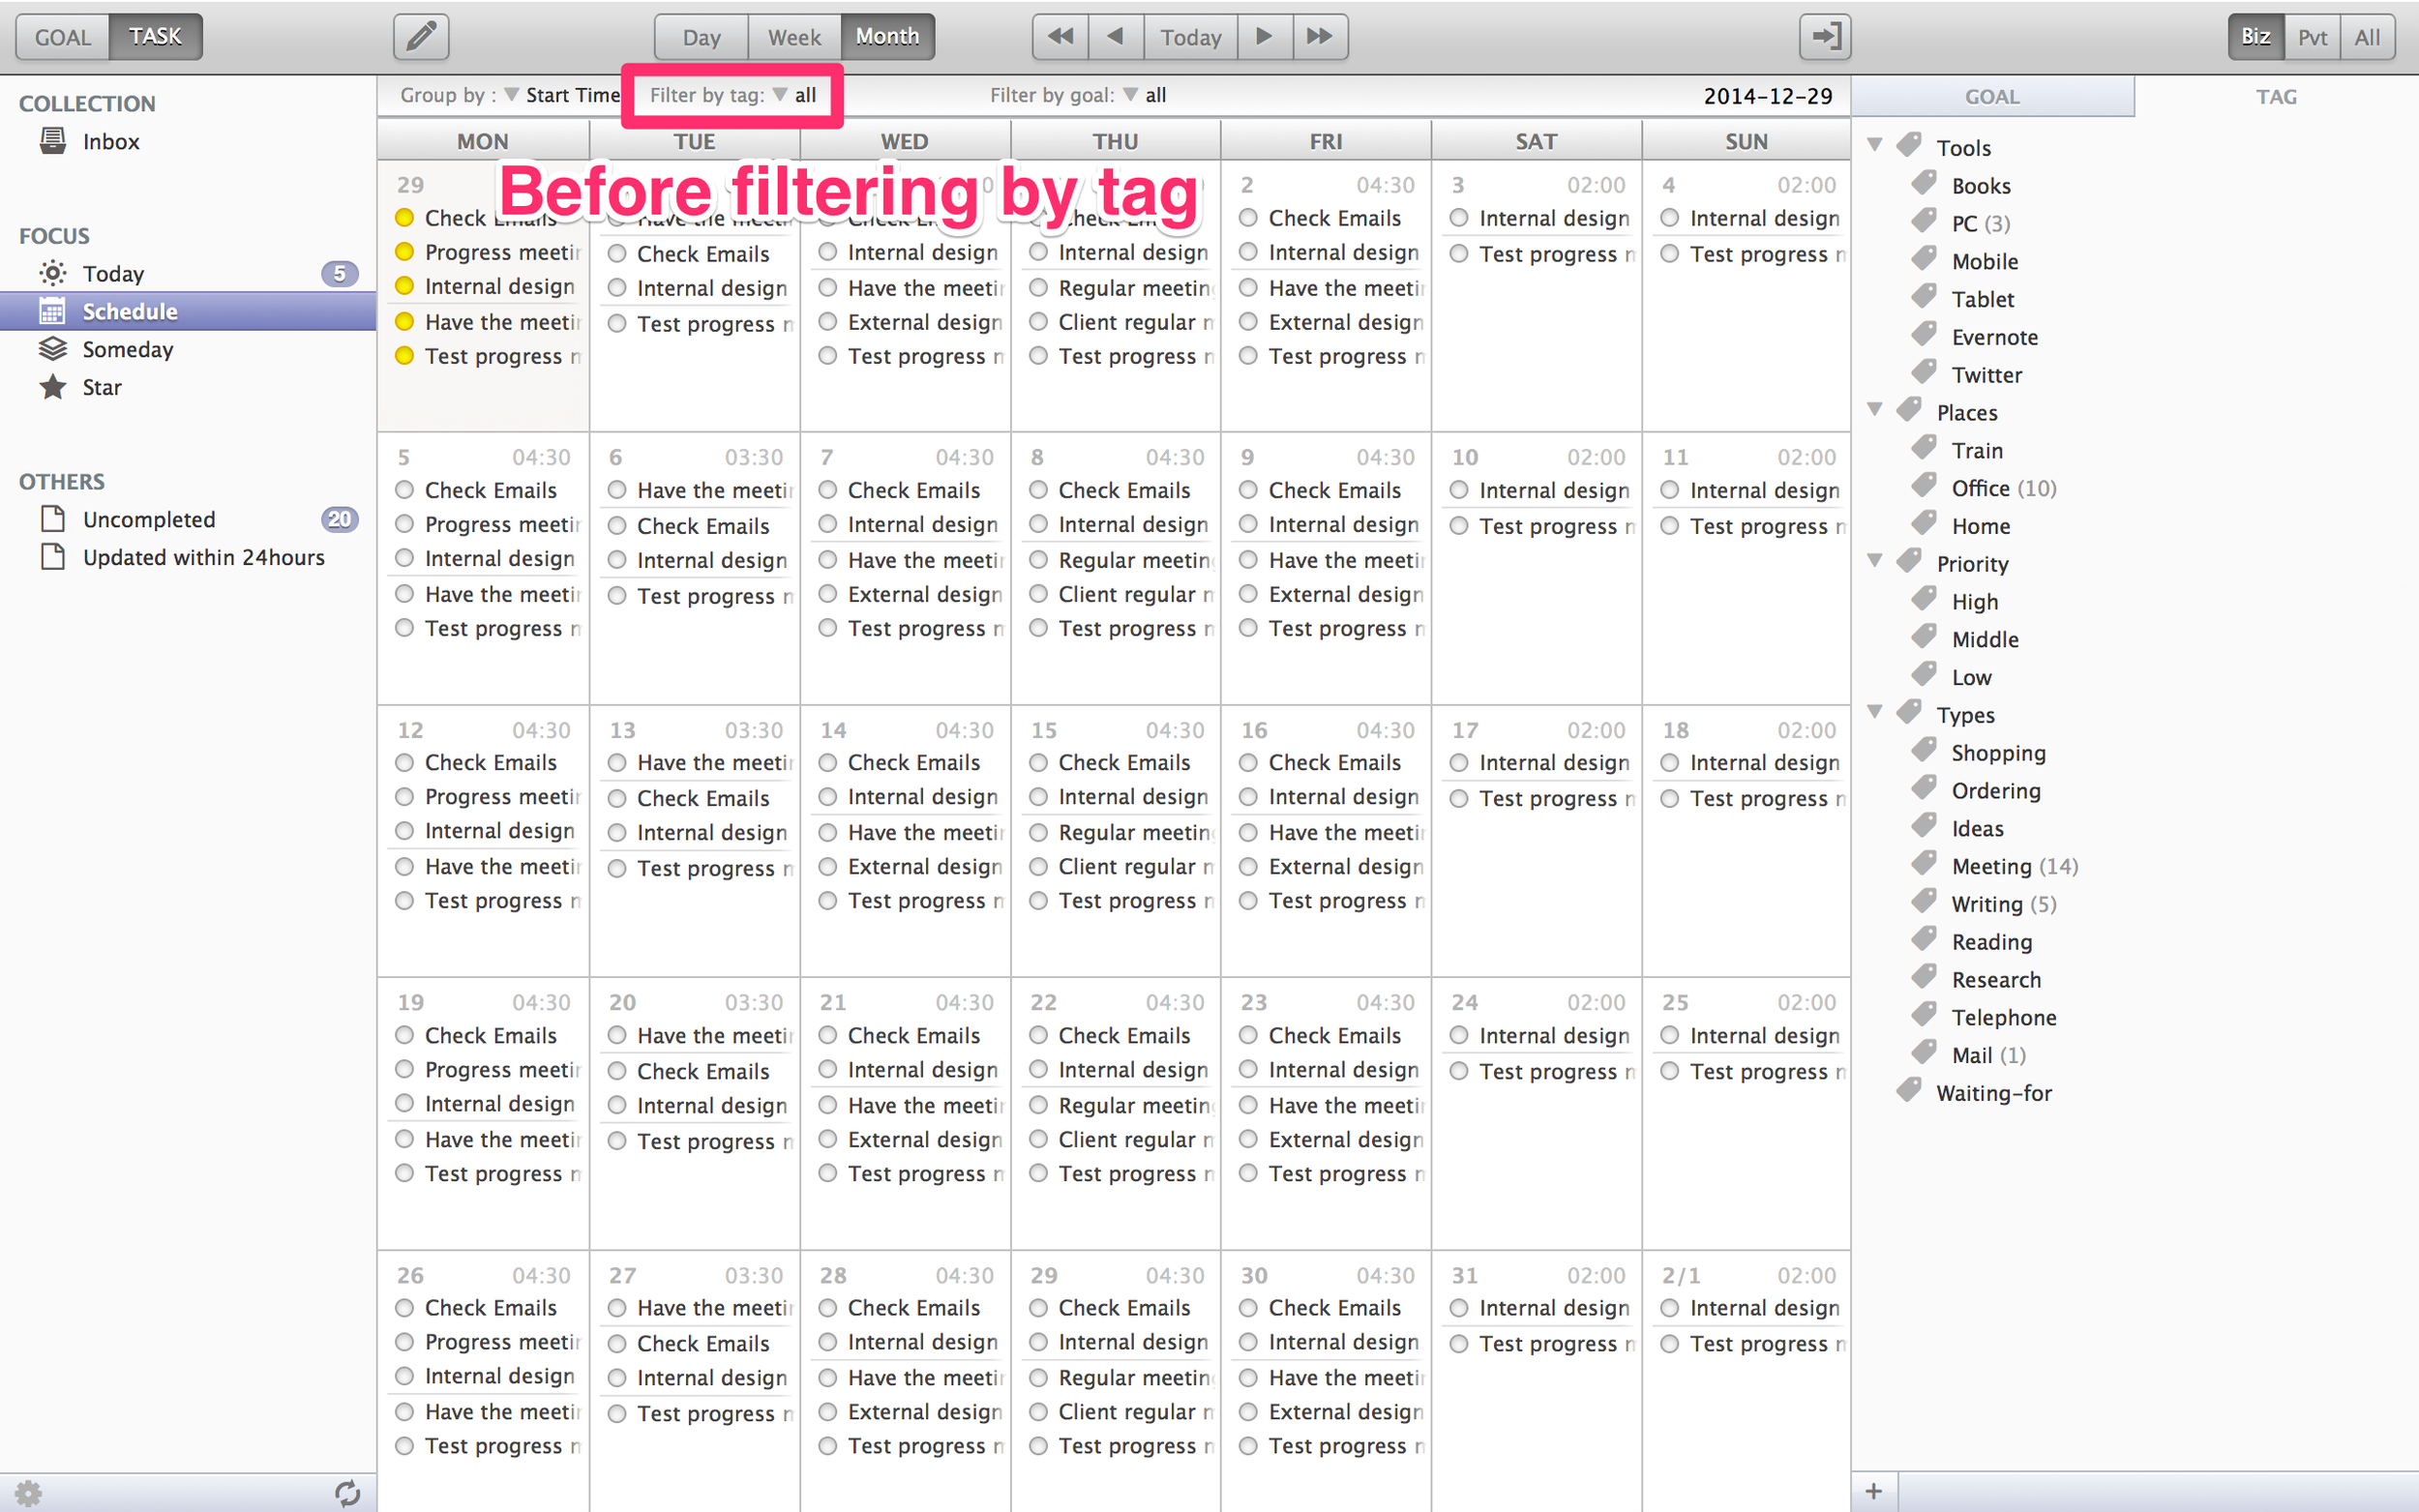 Before filtering : All the tasks are displayed.